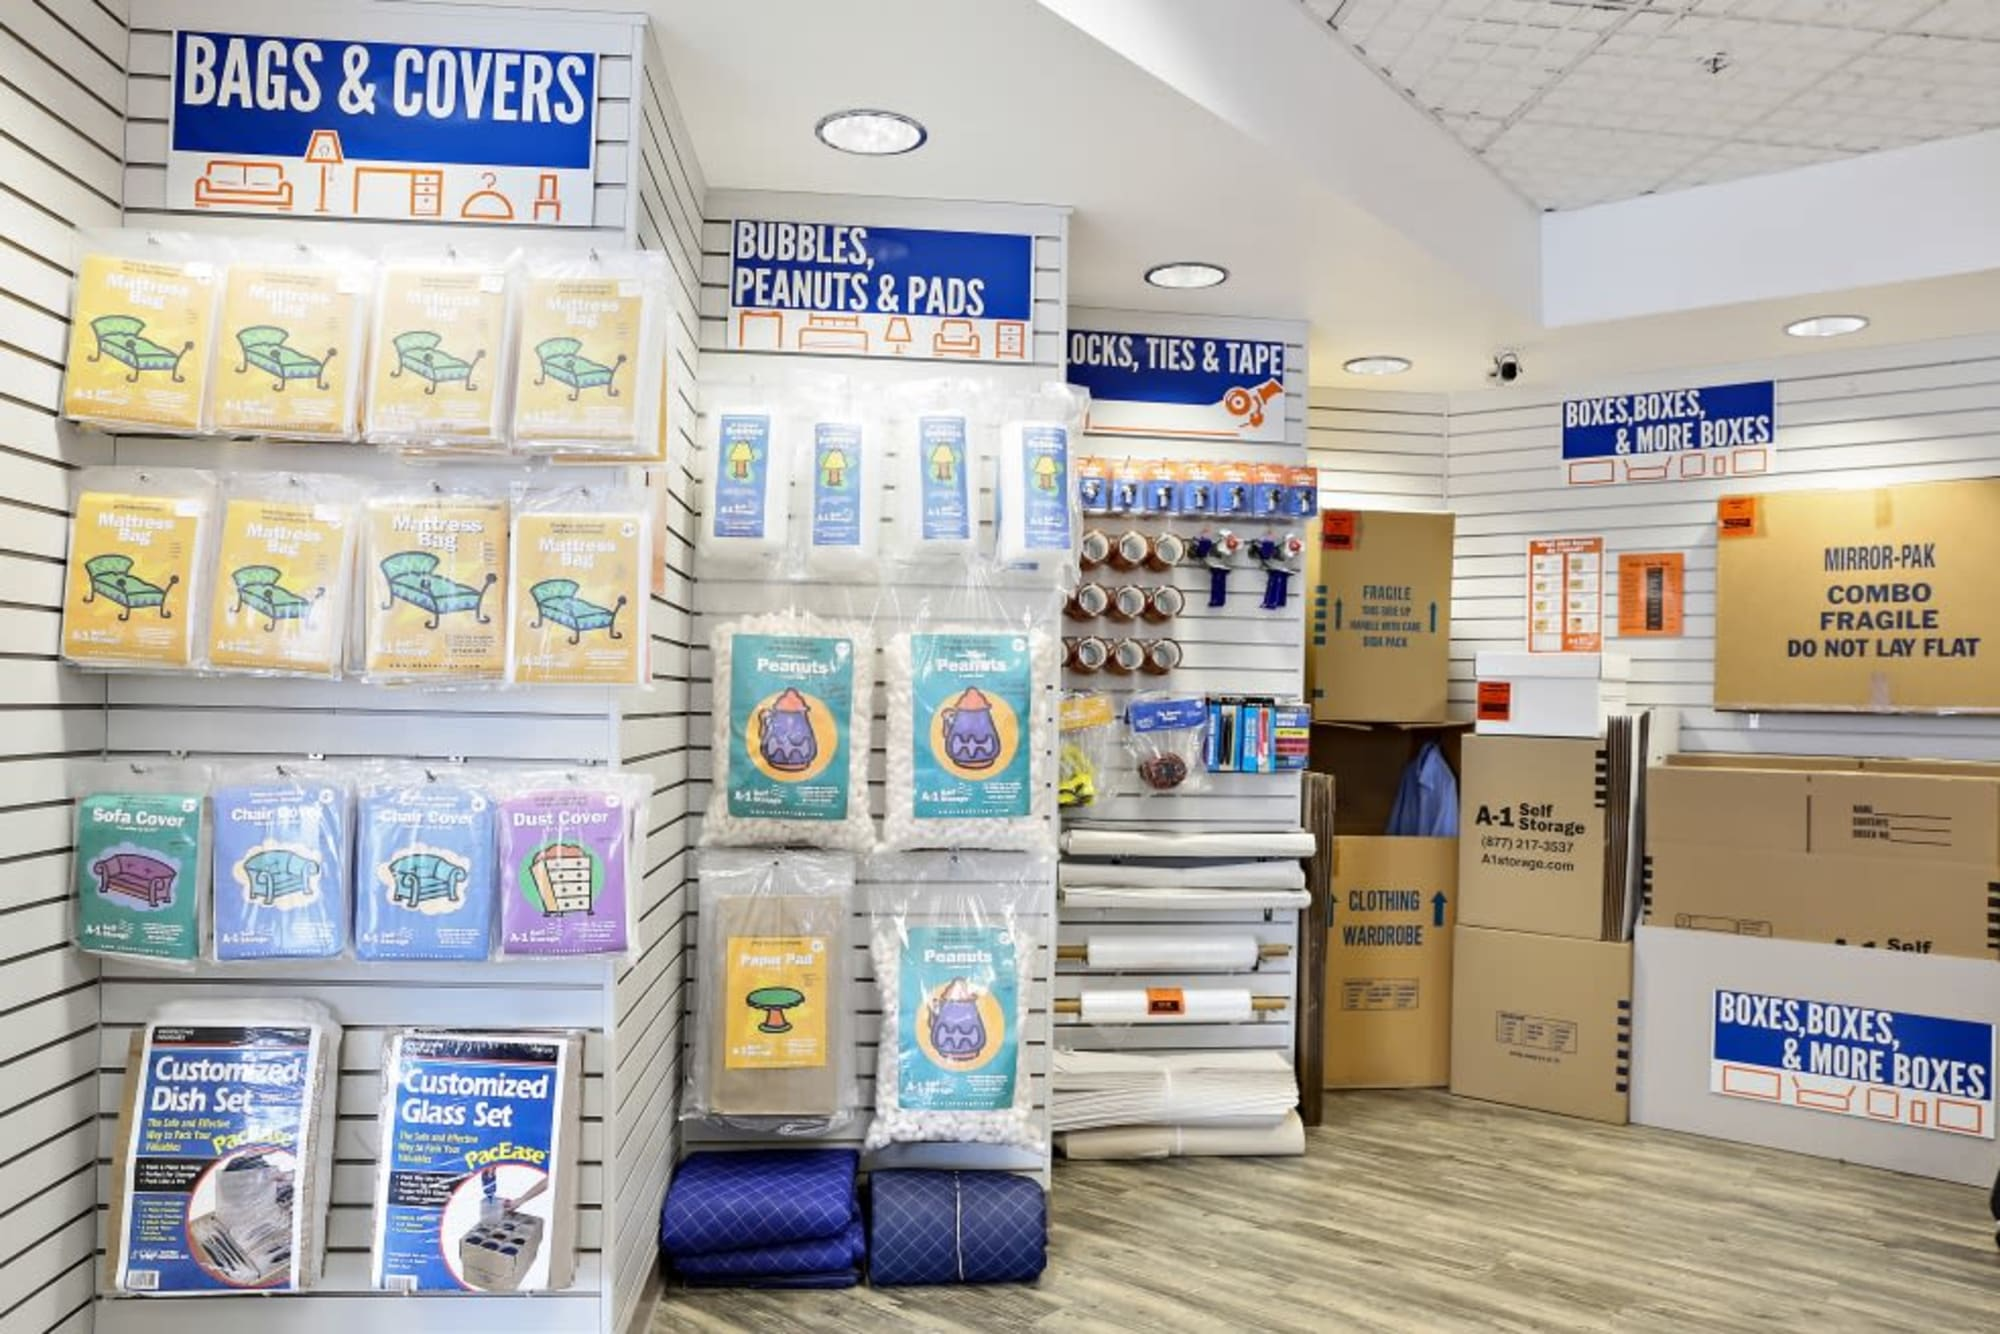 Packing and moving supplies at A-1 Self Storage in San Jose, California